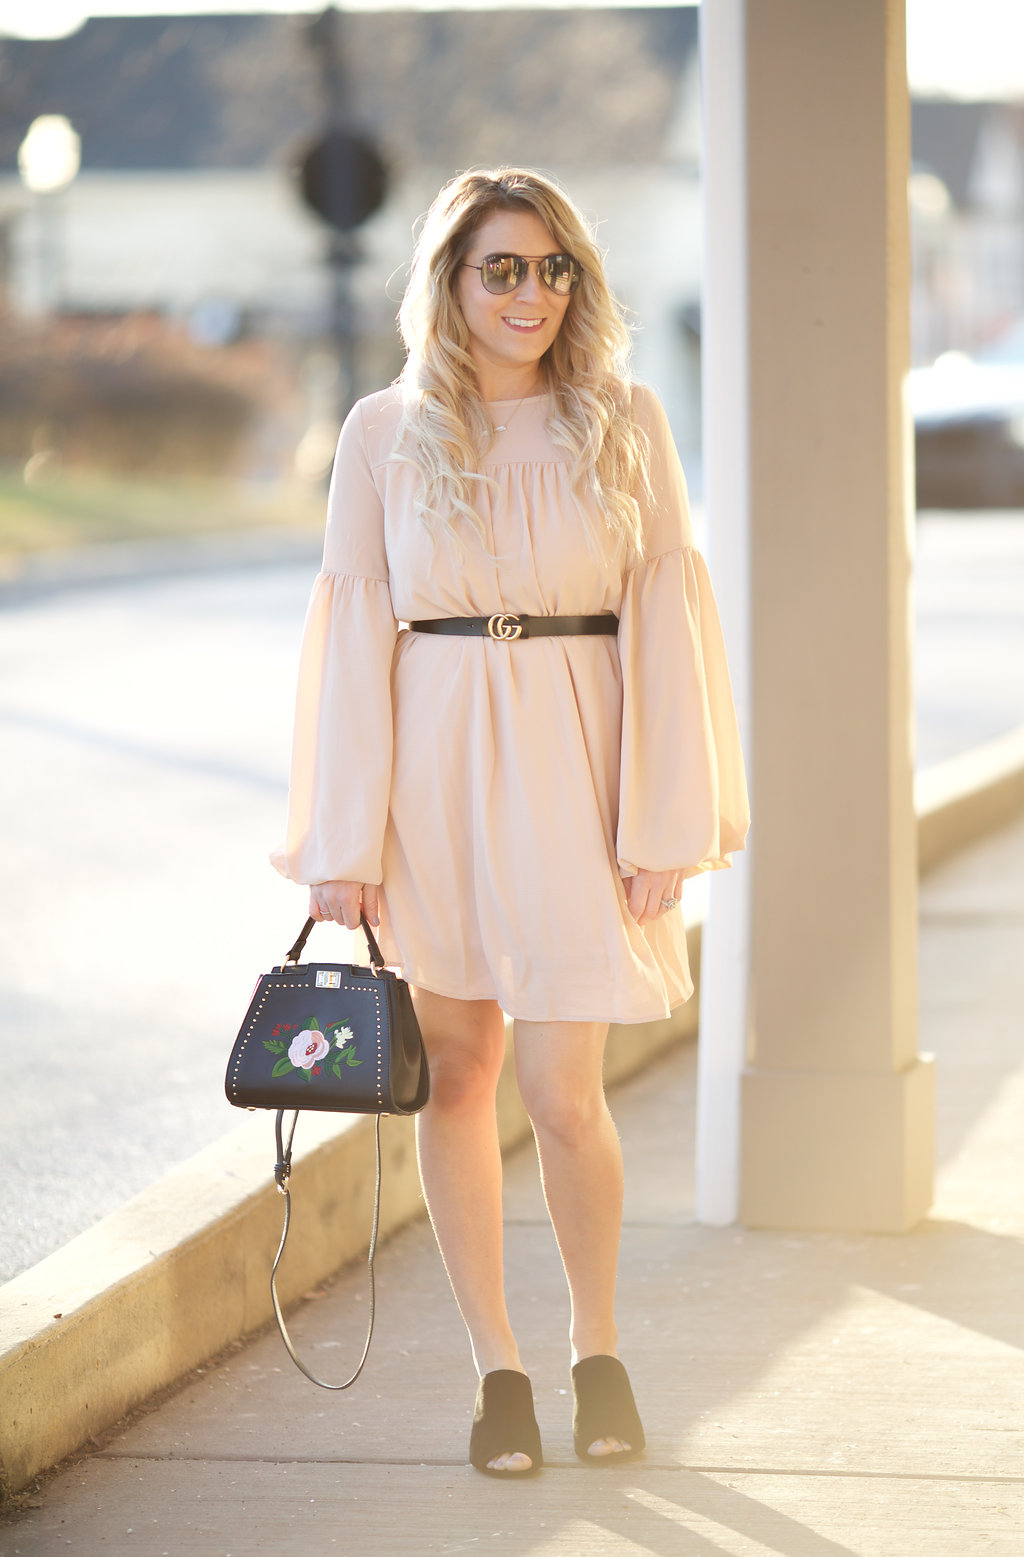 A champagne dress is perfect for spring!